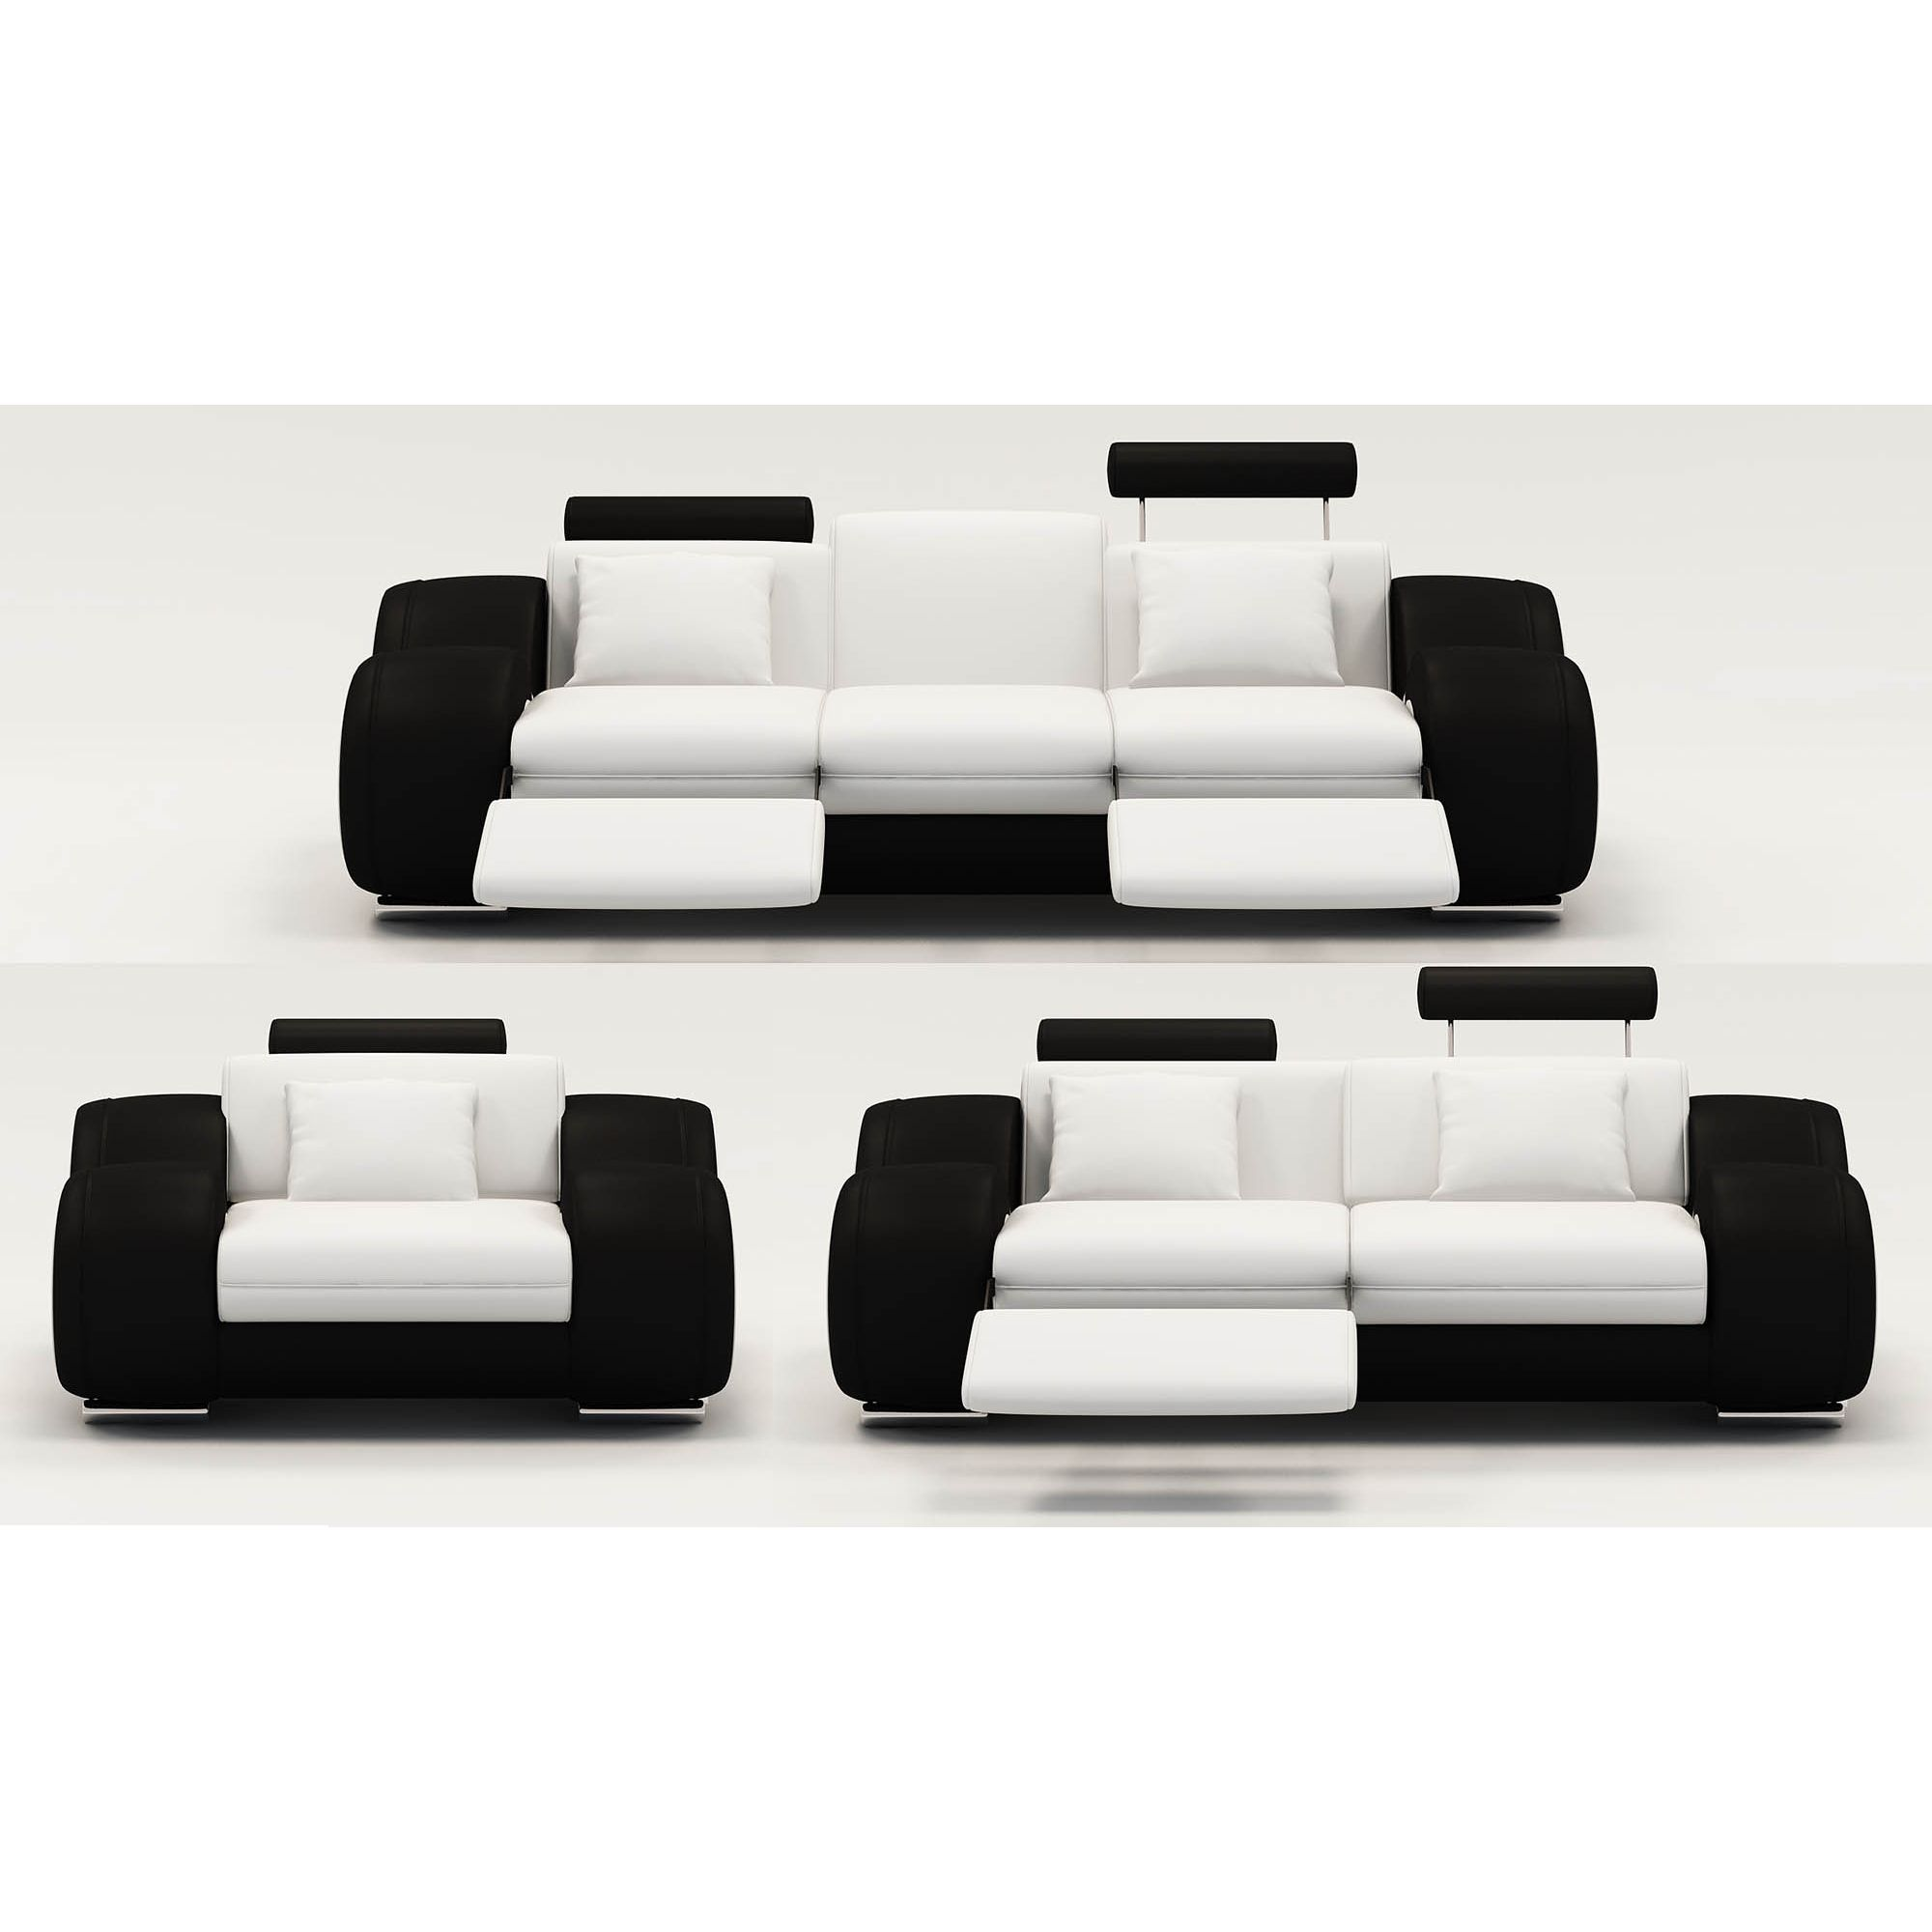 Deco in paris ensemble canape relax design 3 2 places - Chaise noir et blanc design ...